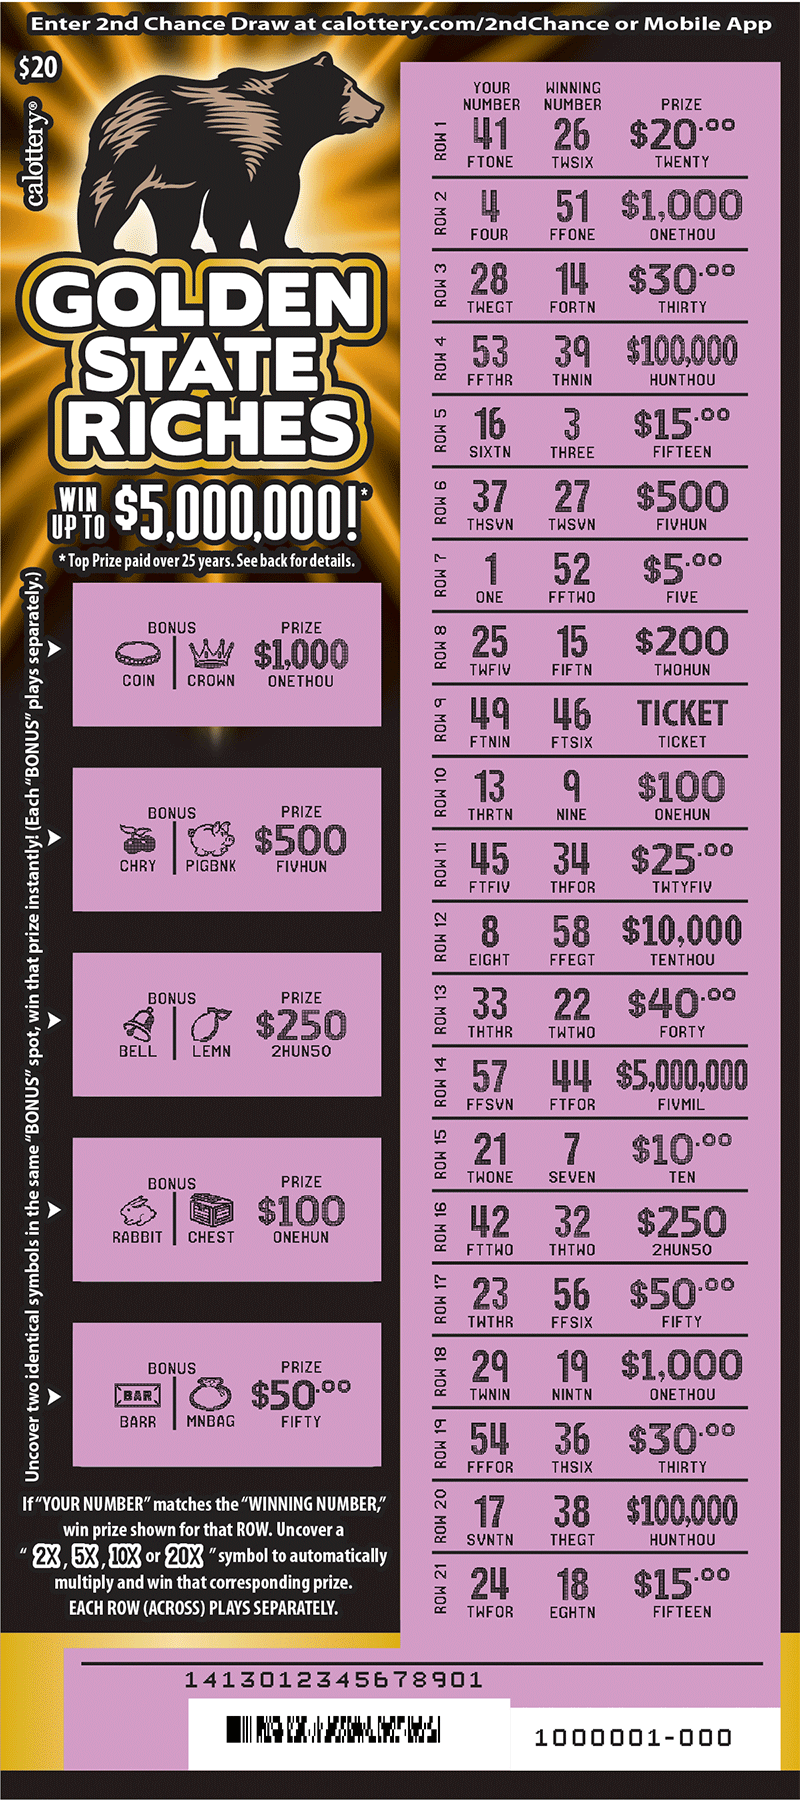 $20 Golden State Riches scratched ticket